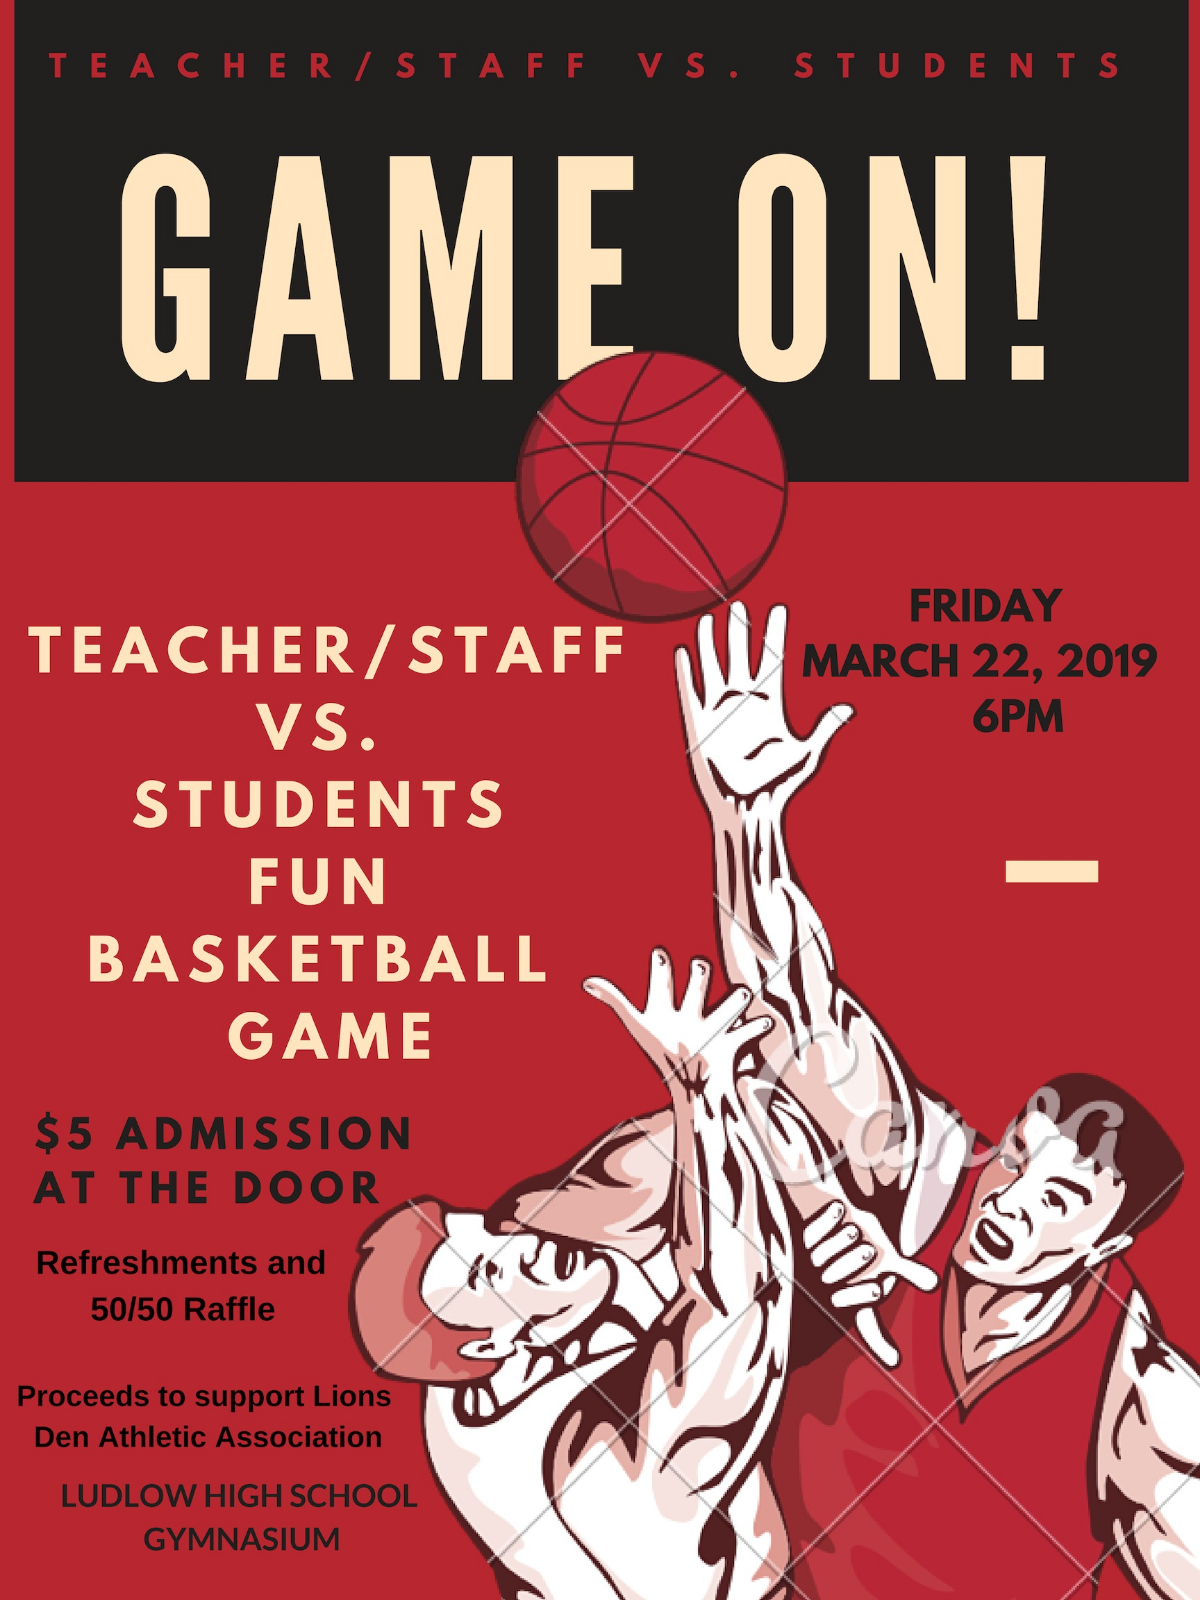 Student vs Faculty Basketball Game